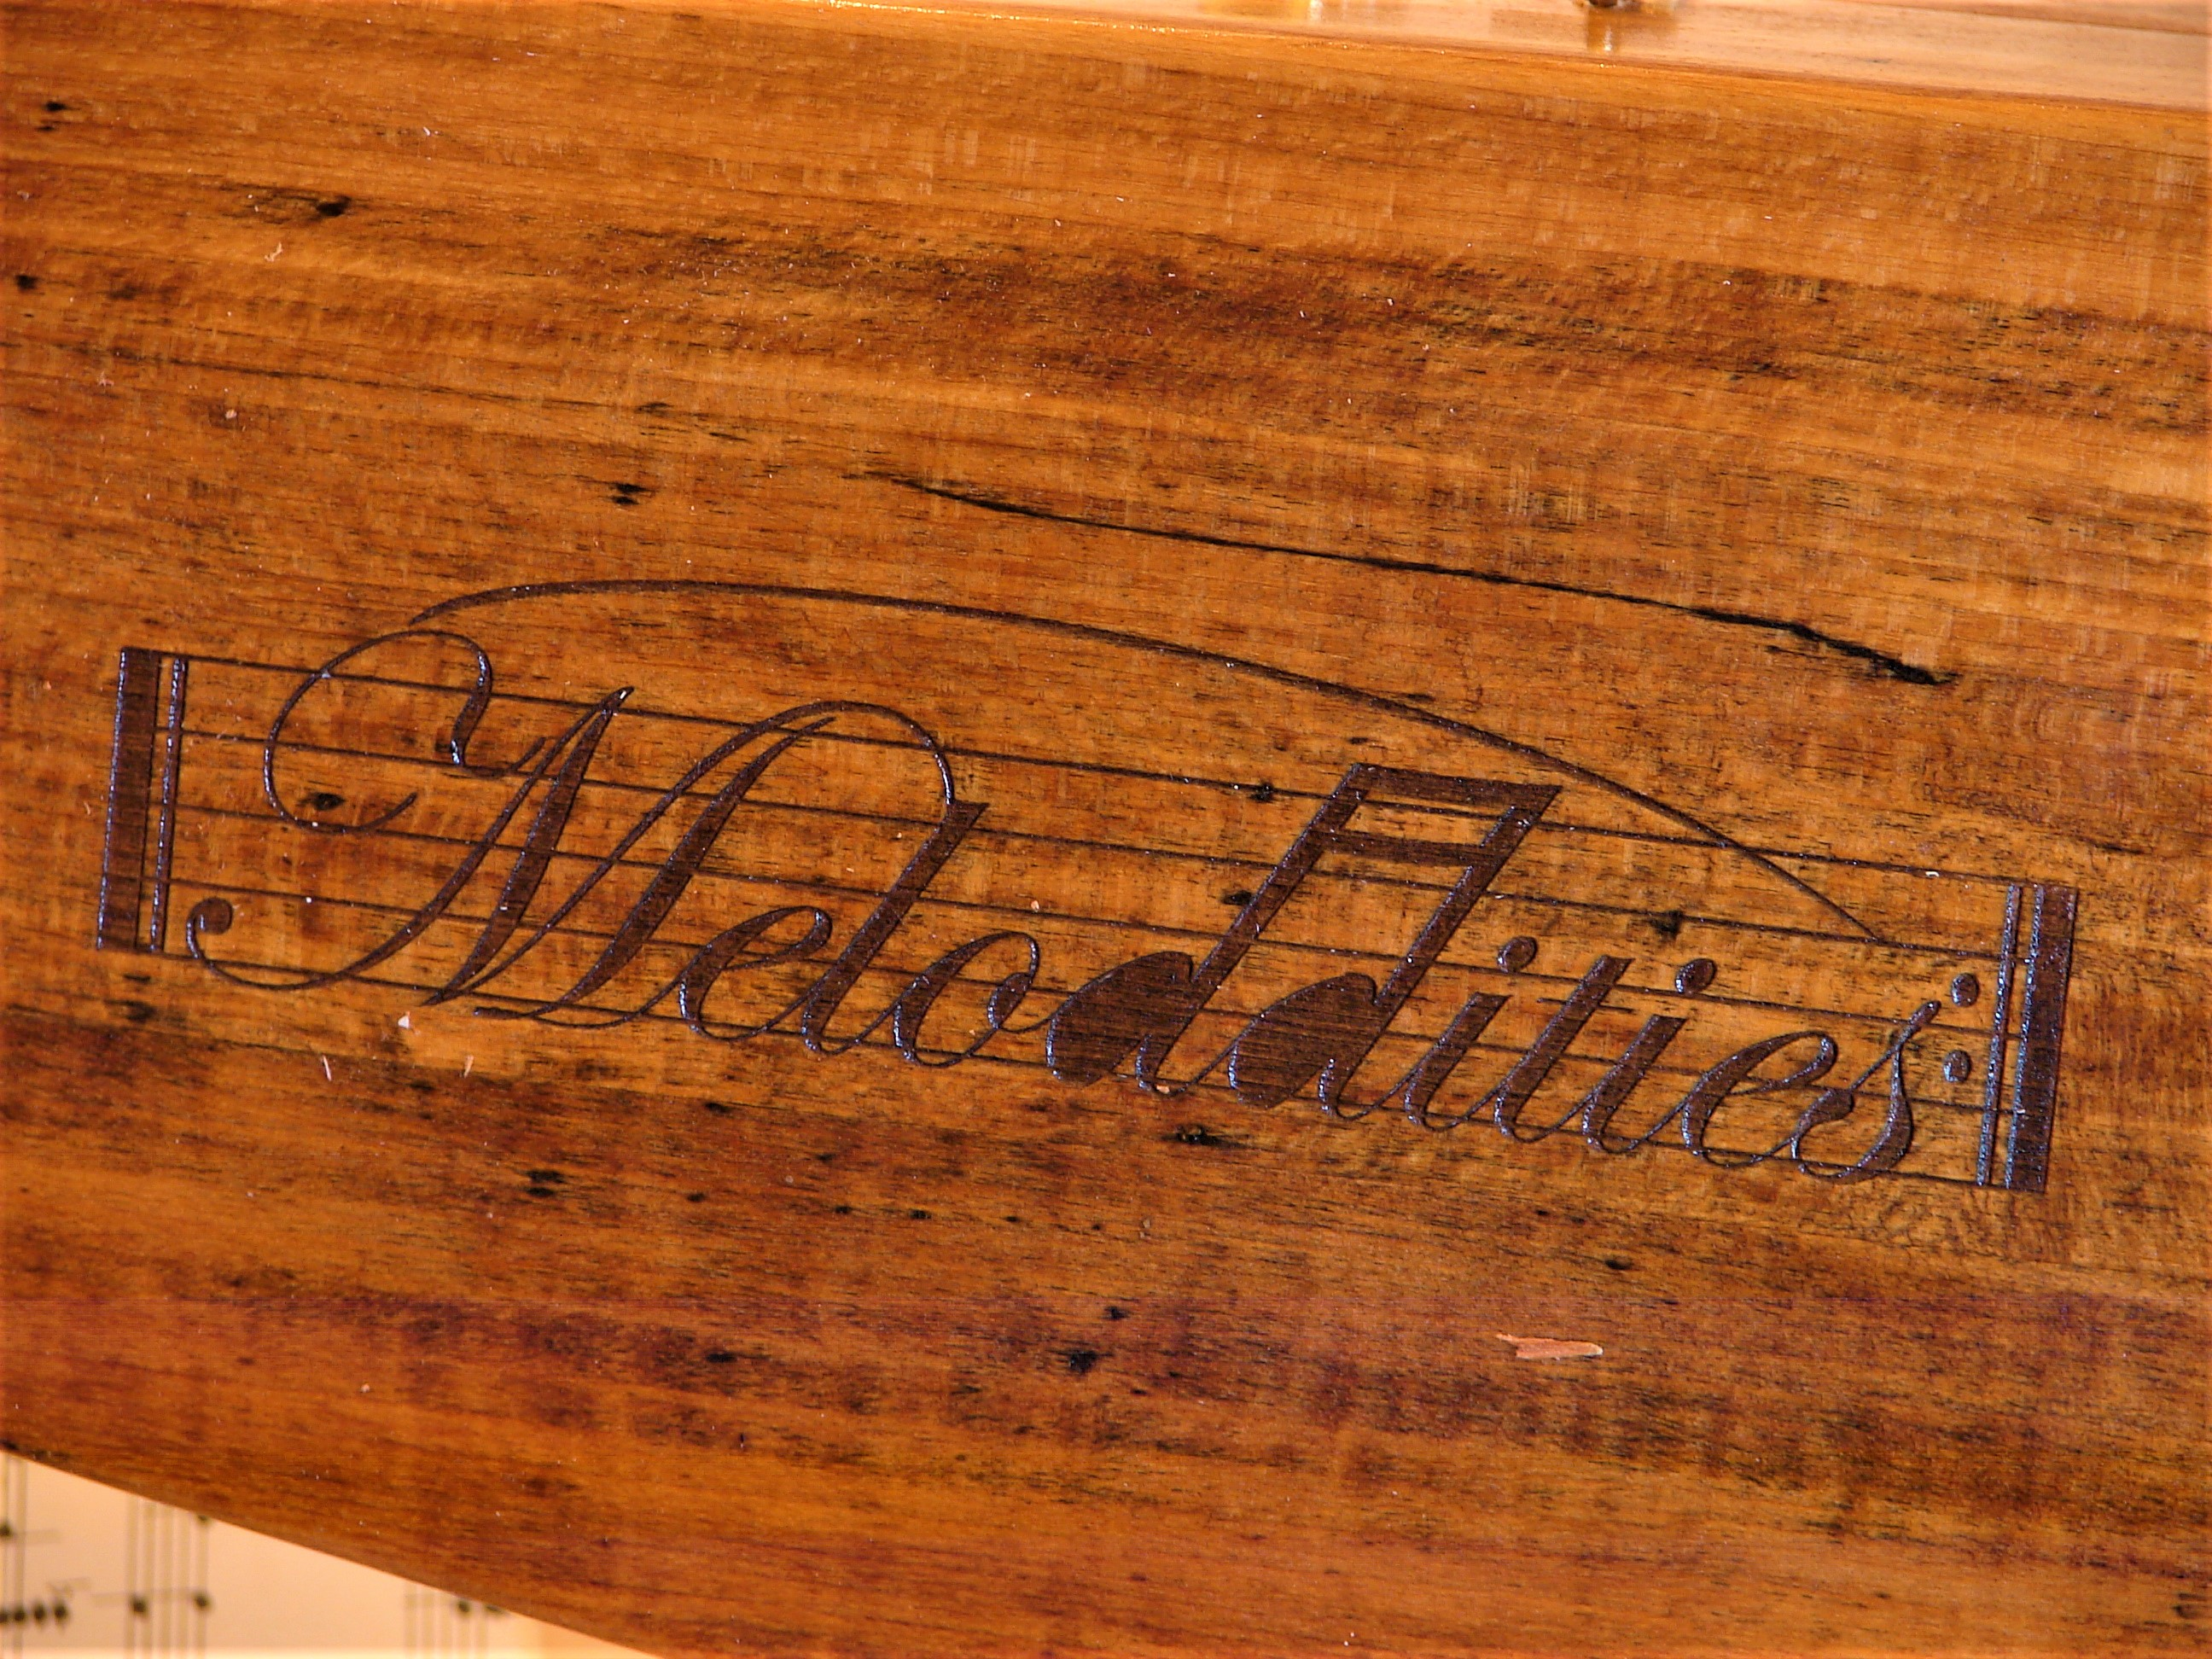 Laser-Engraved Meloddities Logo